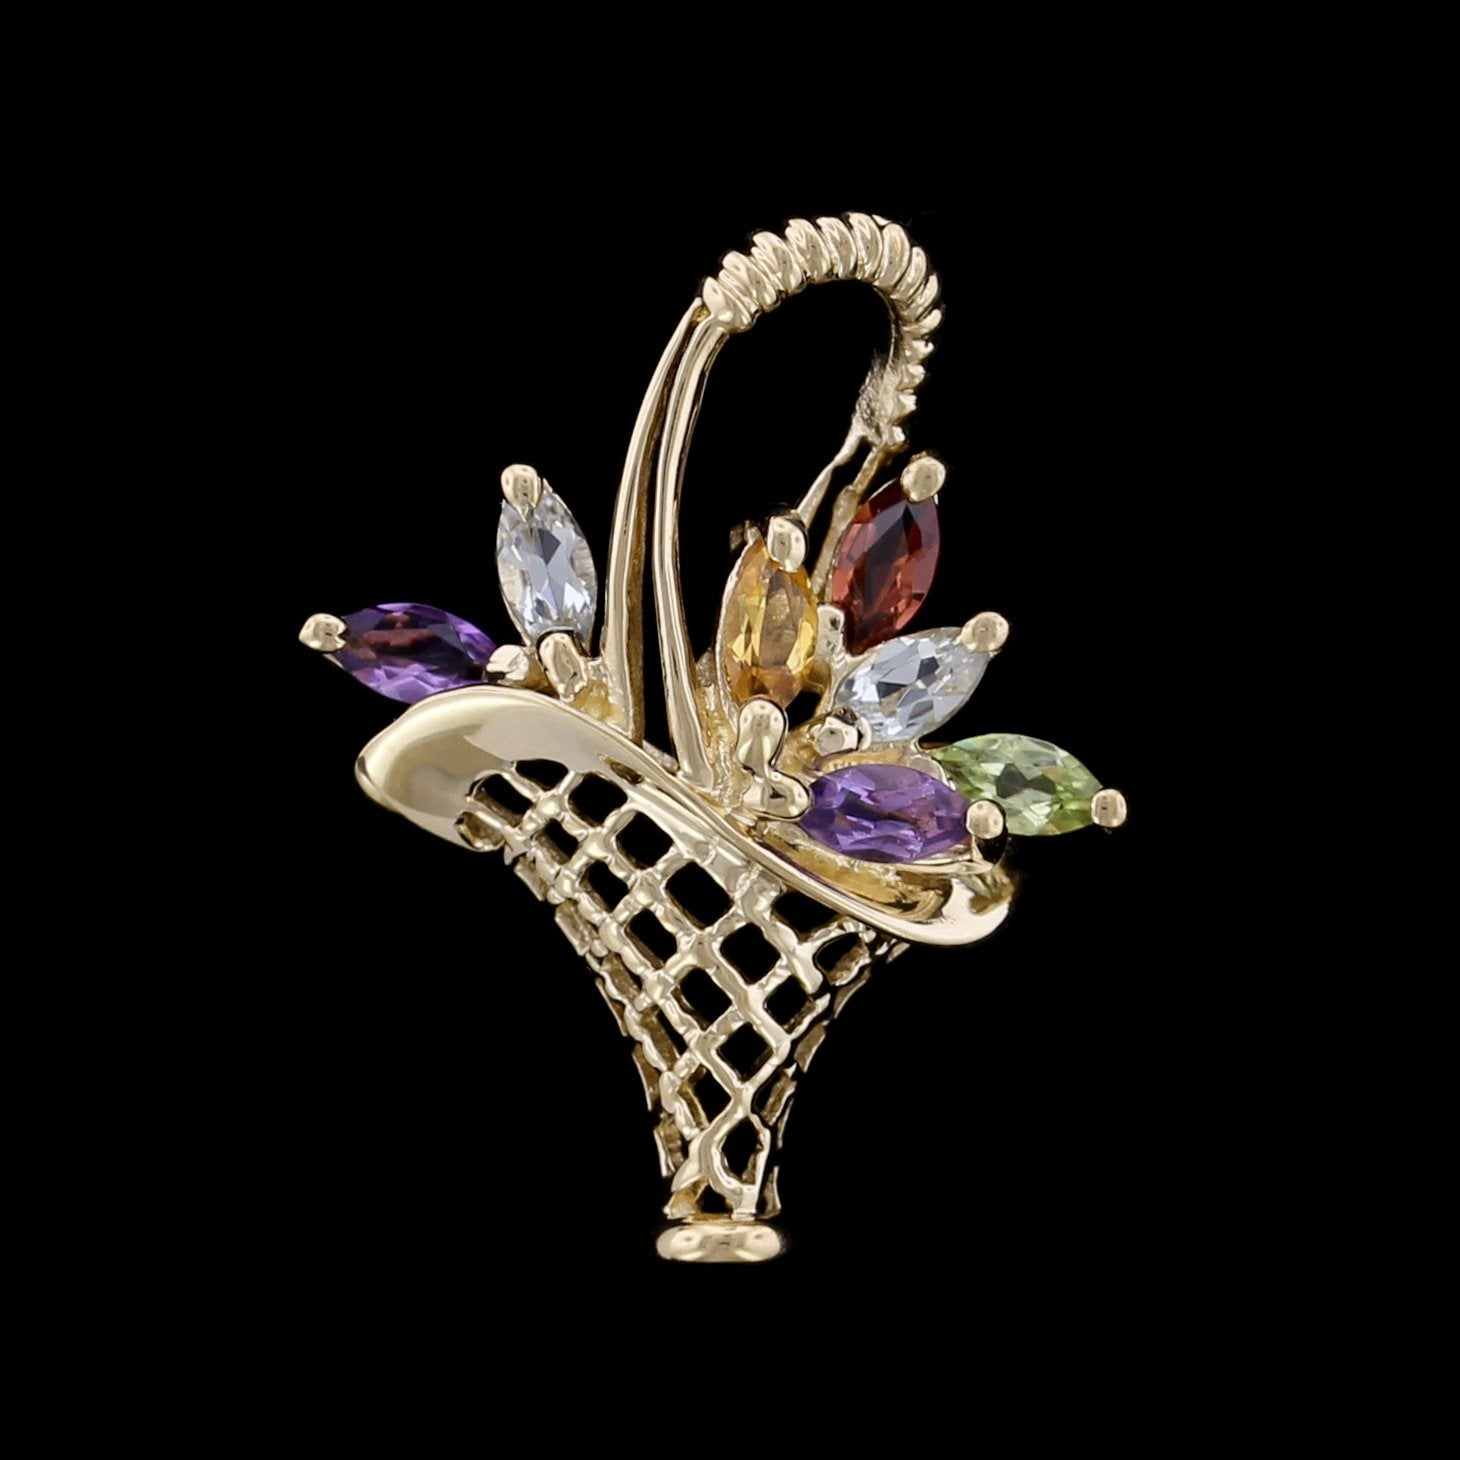 14K Yellow Gold Gem-Set Basket Charm